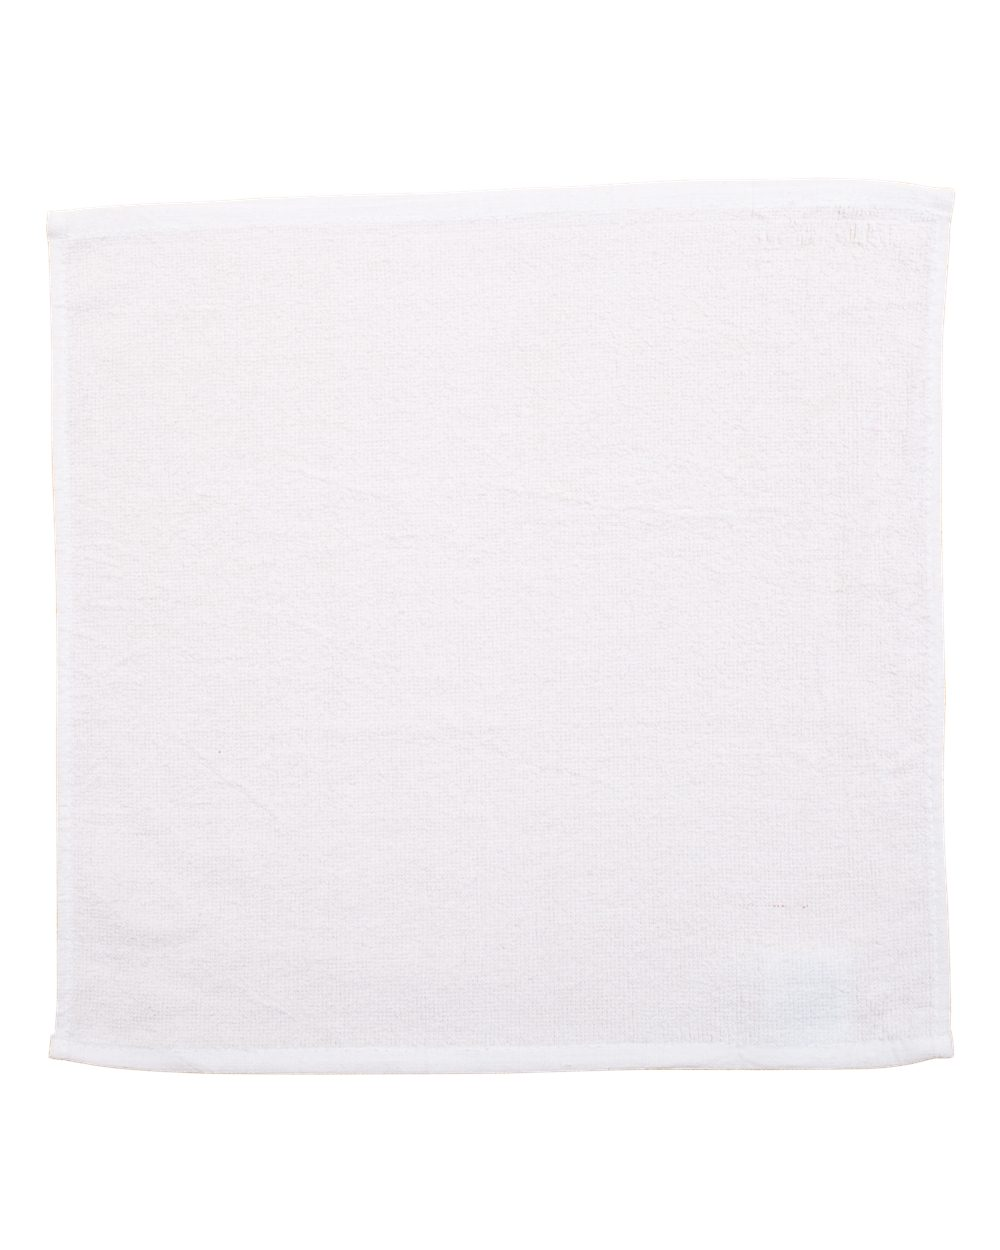 Carmel Towel Company 1515 - Rally Towel